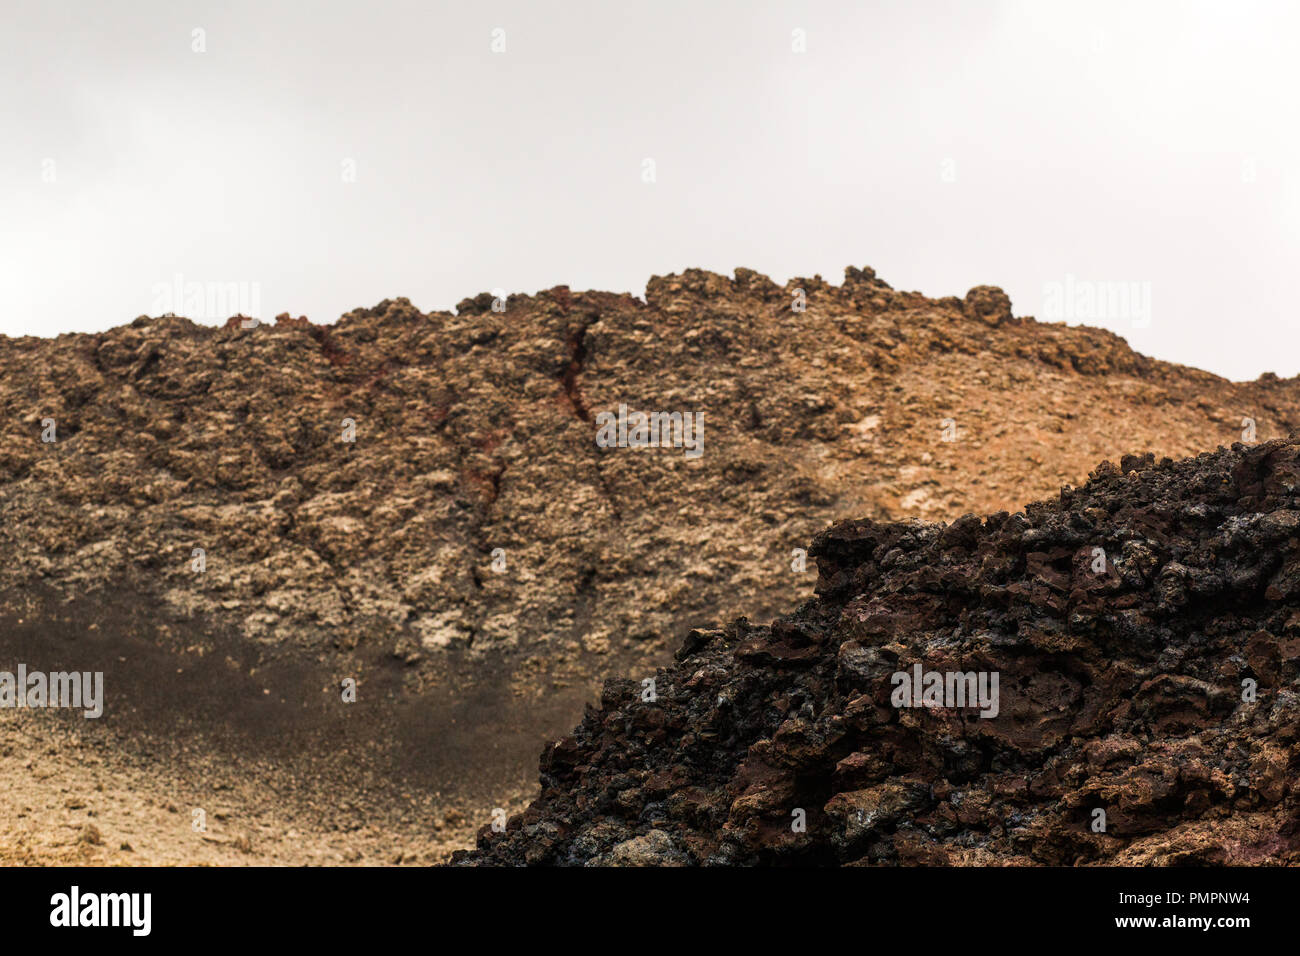 Layers of rocky lava flow from a volcanic eruption in lava fields on Lanzarote - Stock Image